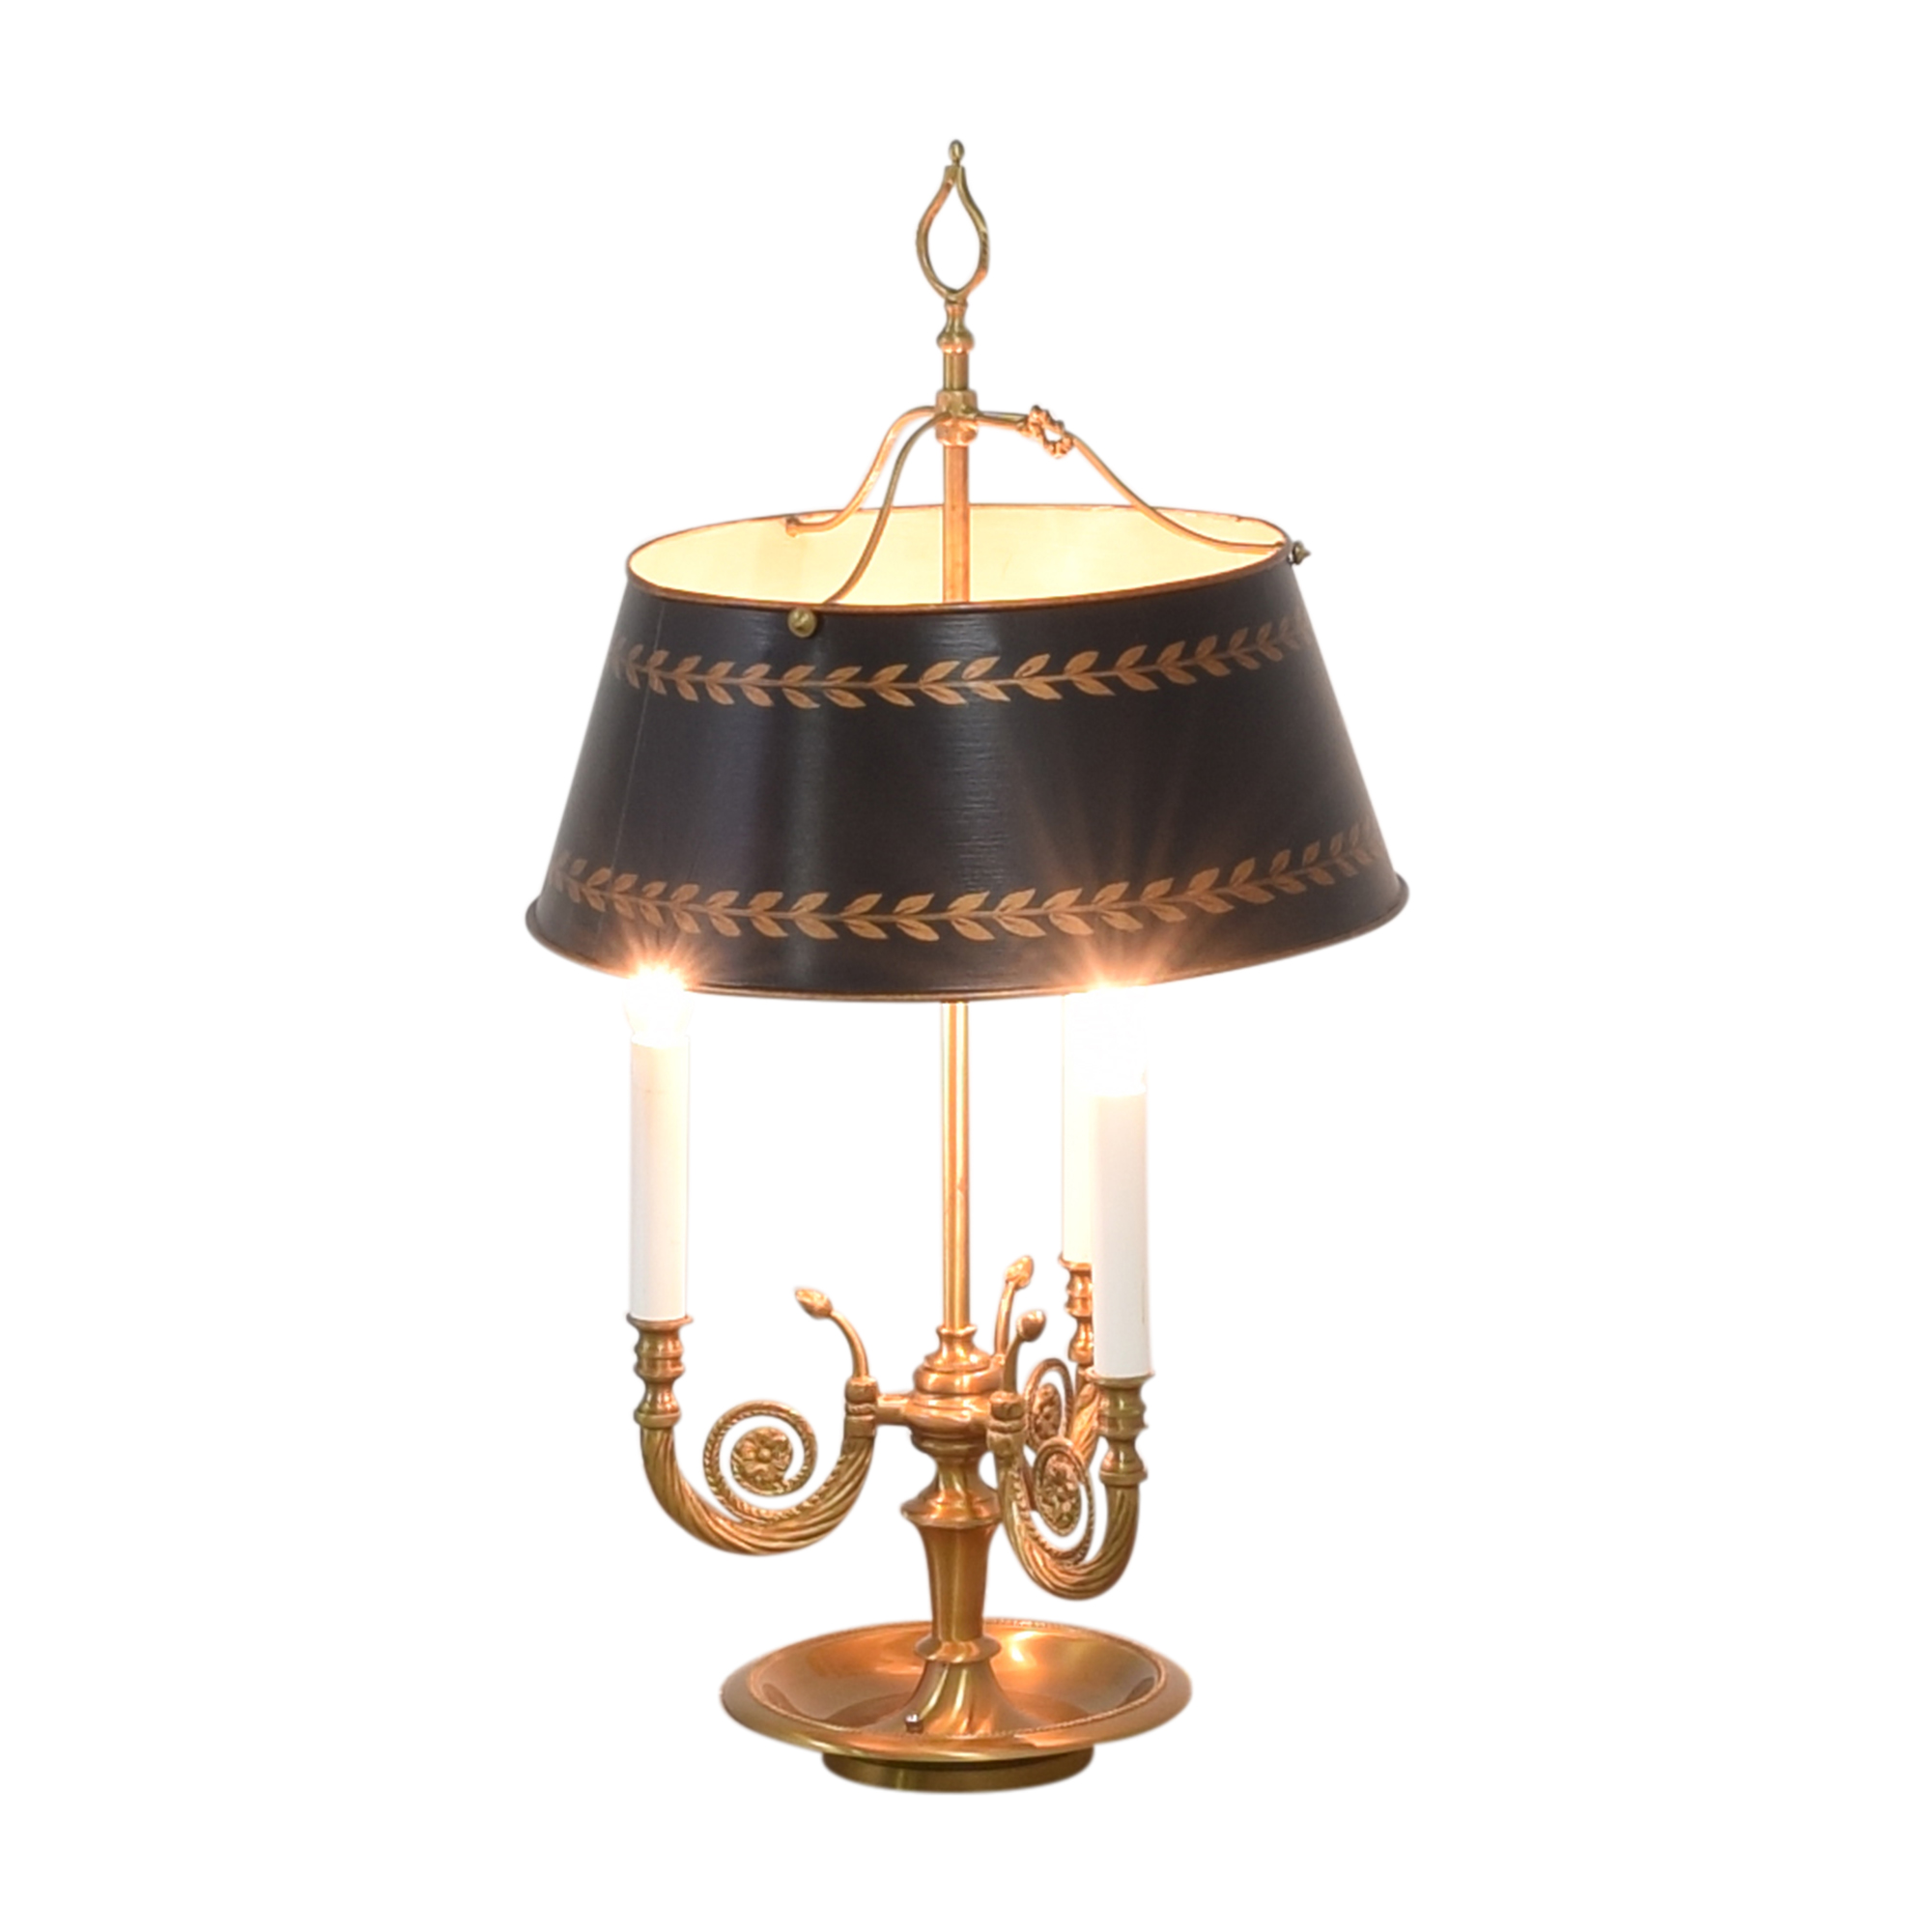 Vintage Triple Table Lamp with Adjustable Shade Lamps